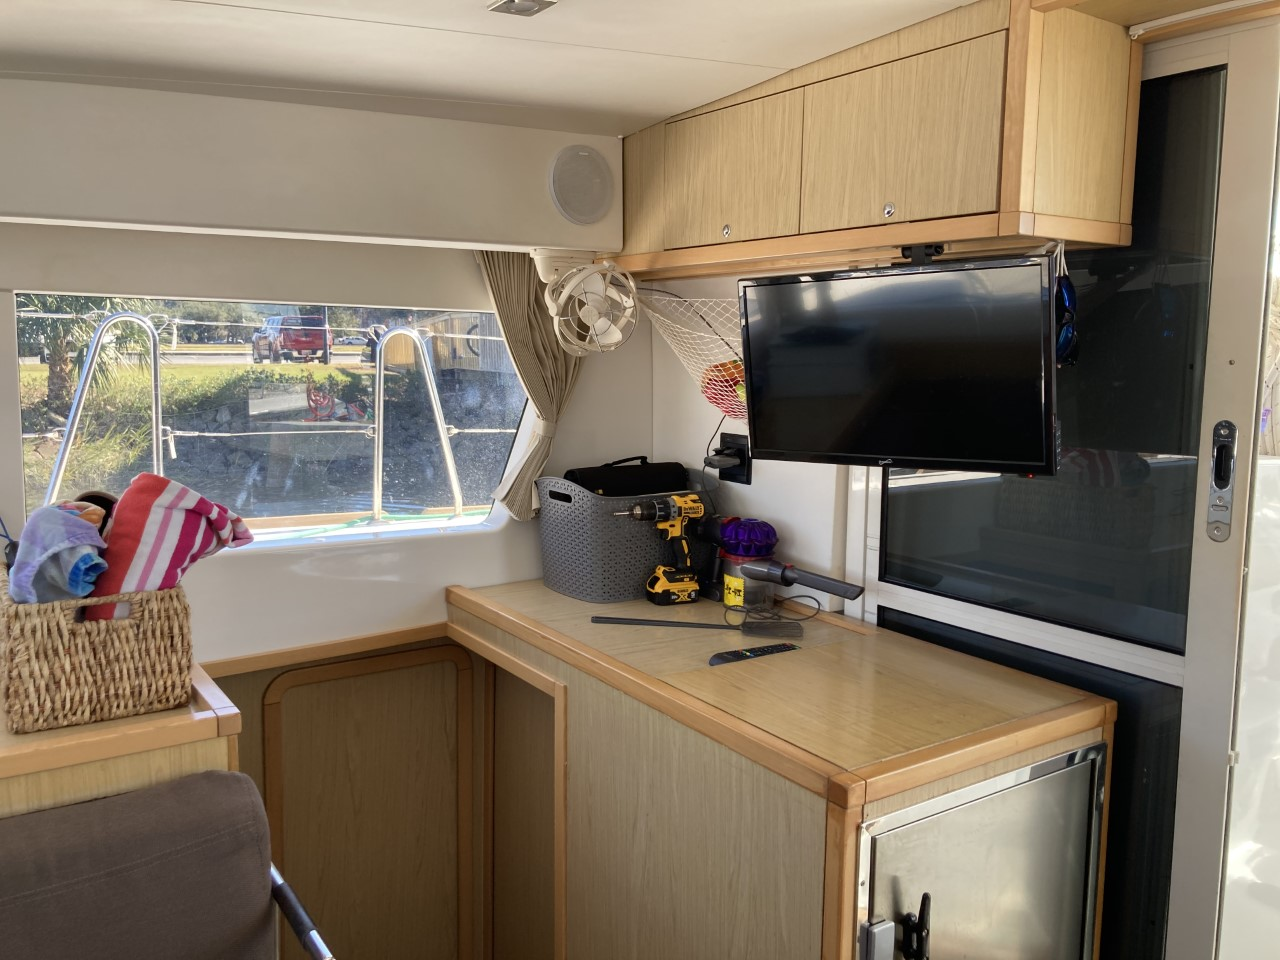 2014 lagoon 39 catamaran CARPE DIEM tv